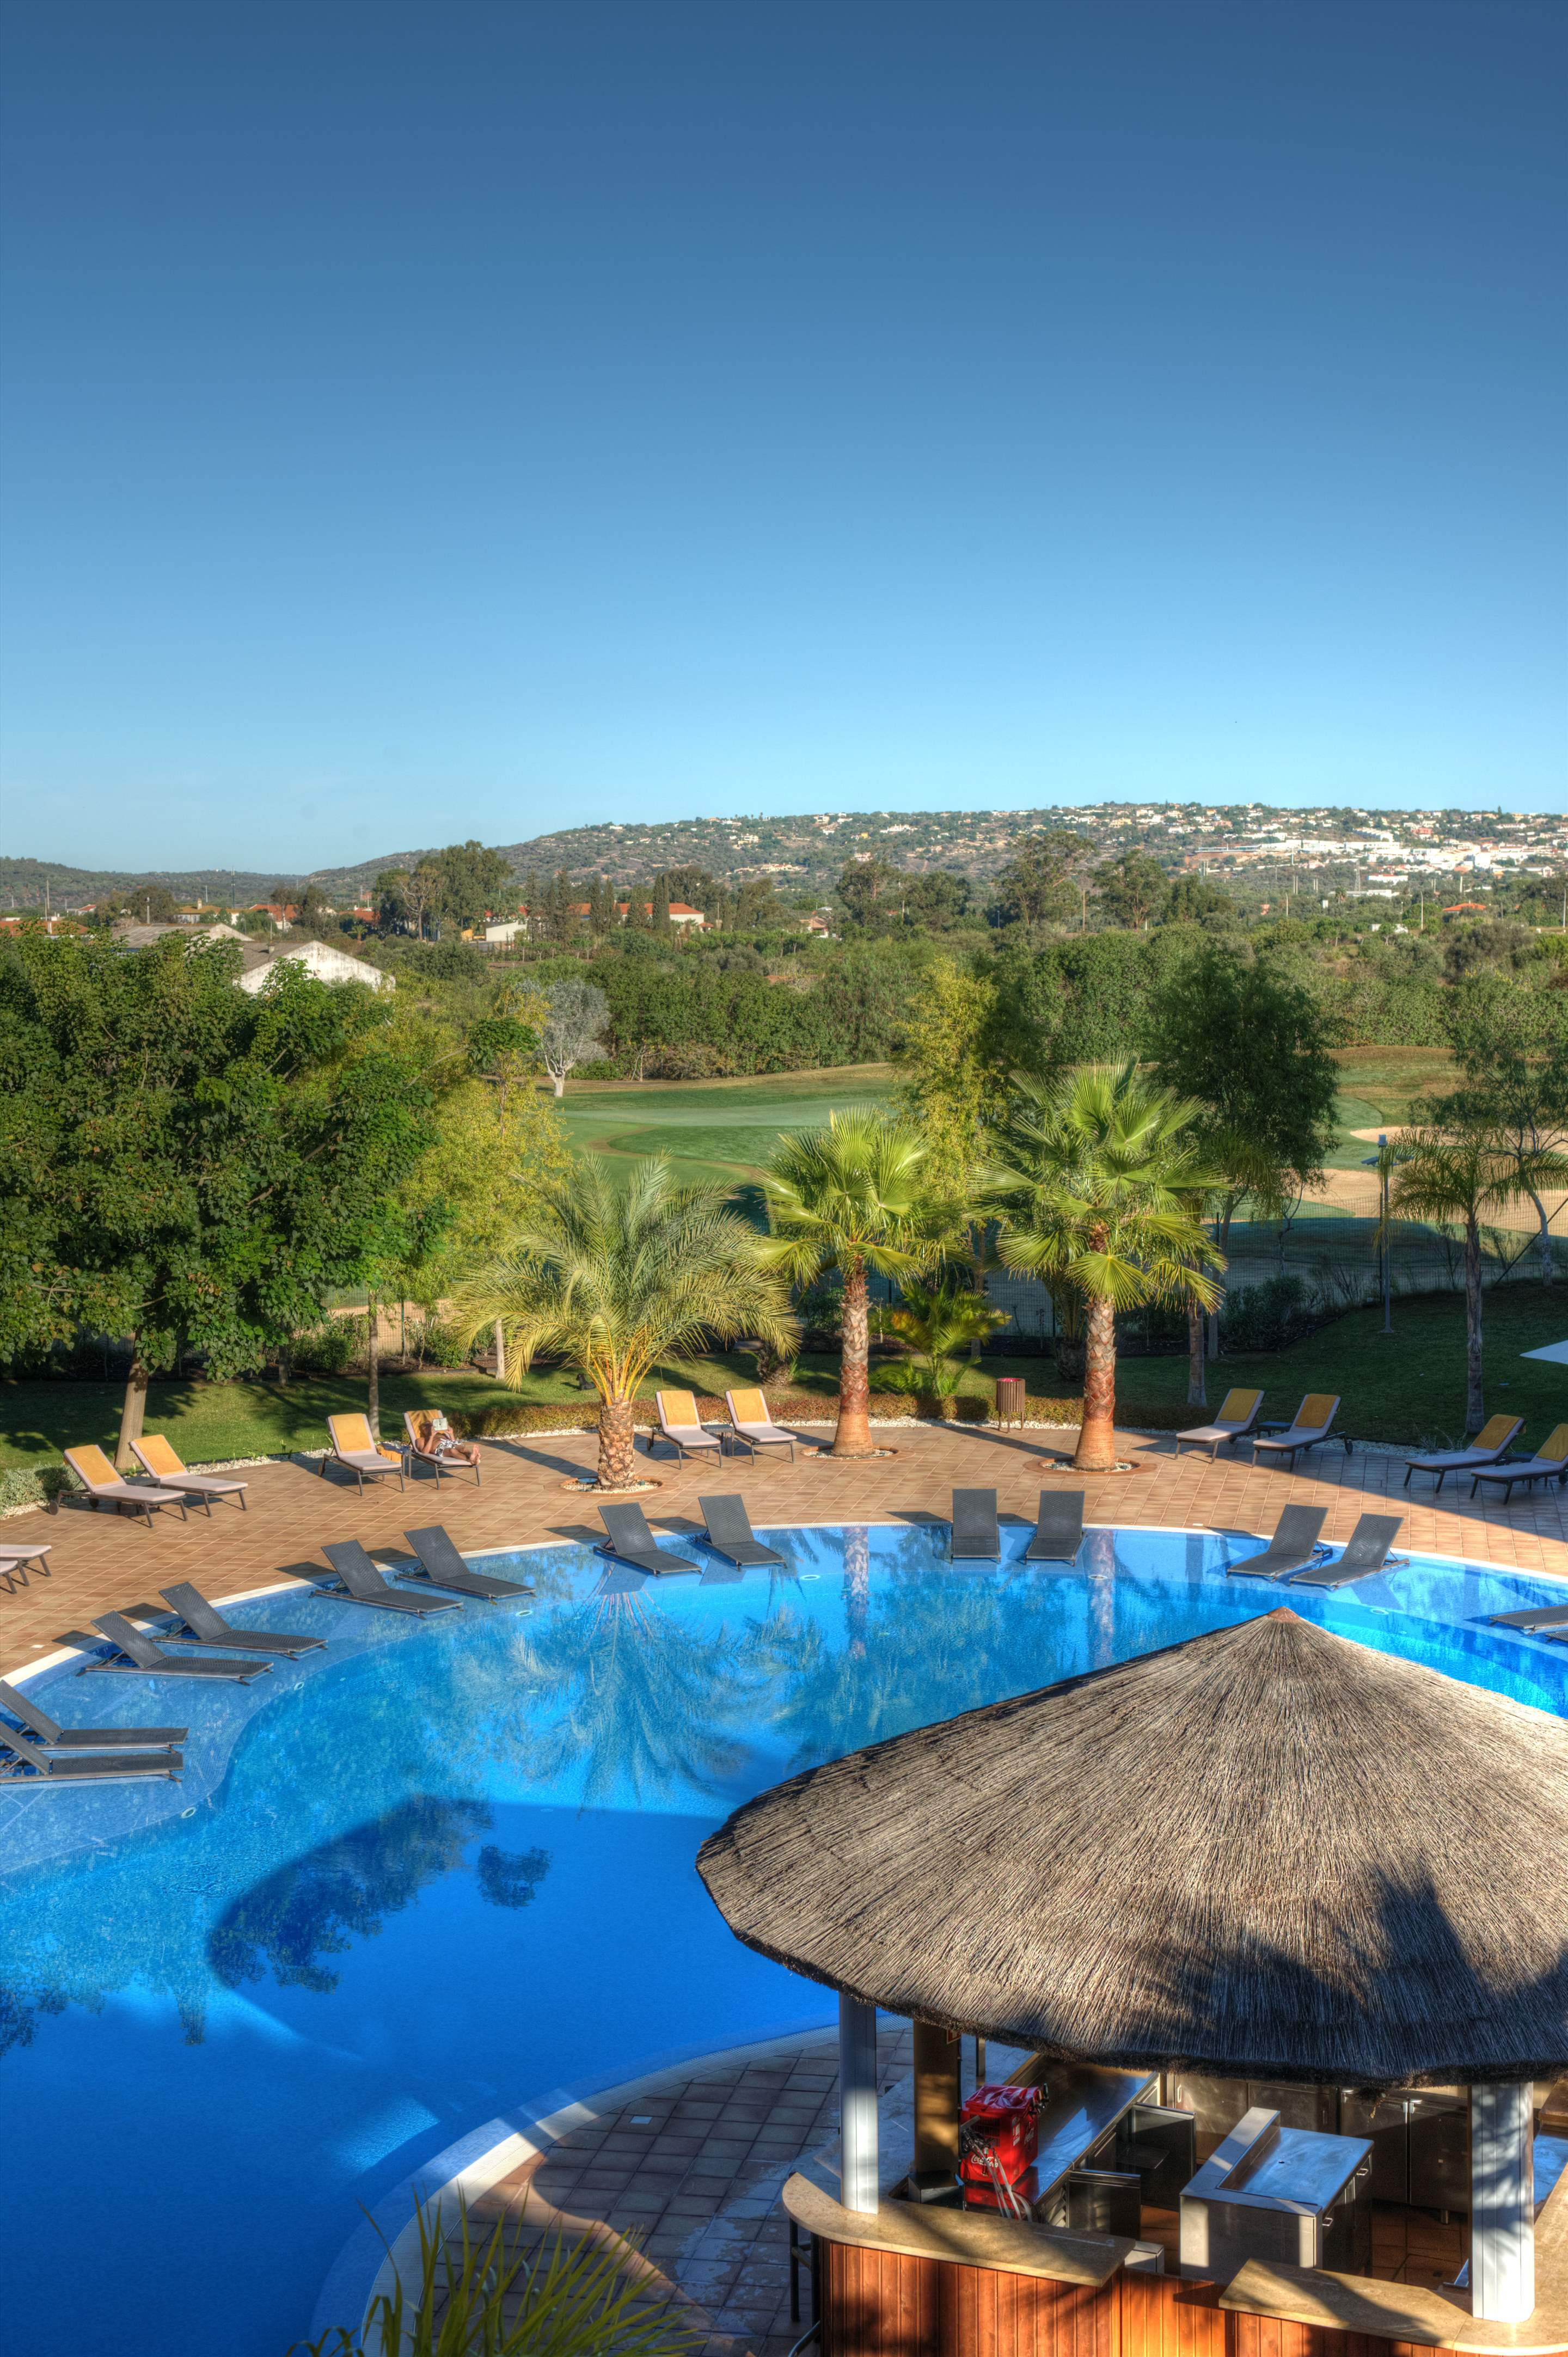 The Residences at Victoria by TIVOLI 3 Bed Apt , Deluxe, Golf or Pool View, 3 bedroom apartment in The Residences at Victoria by TIVOLI, Algarve Photo #23